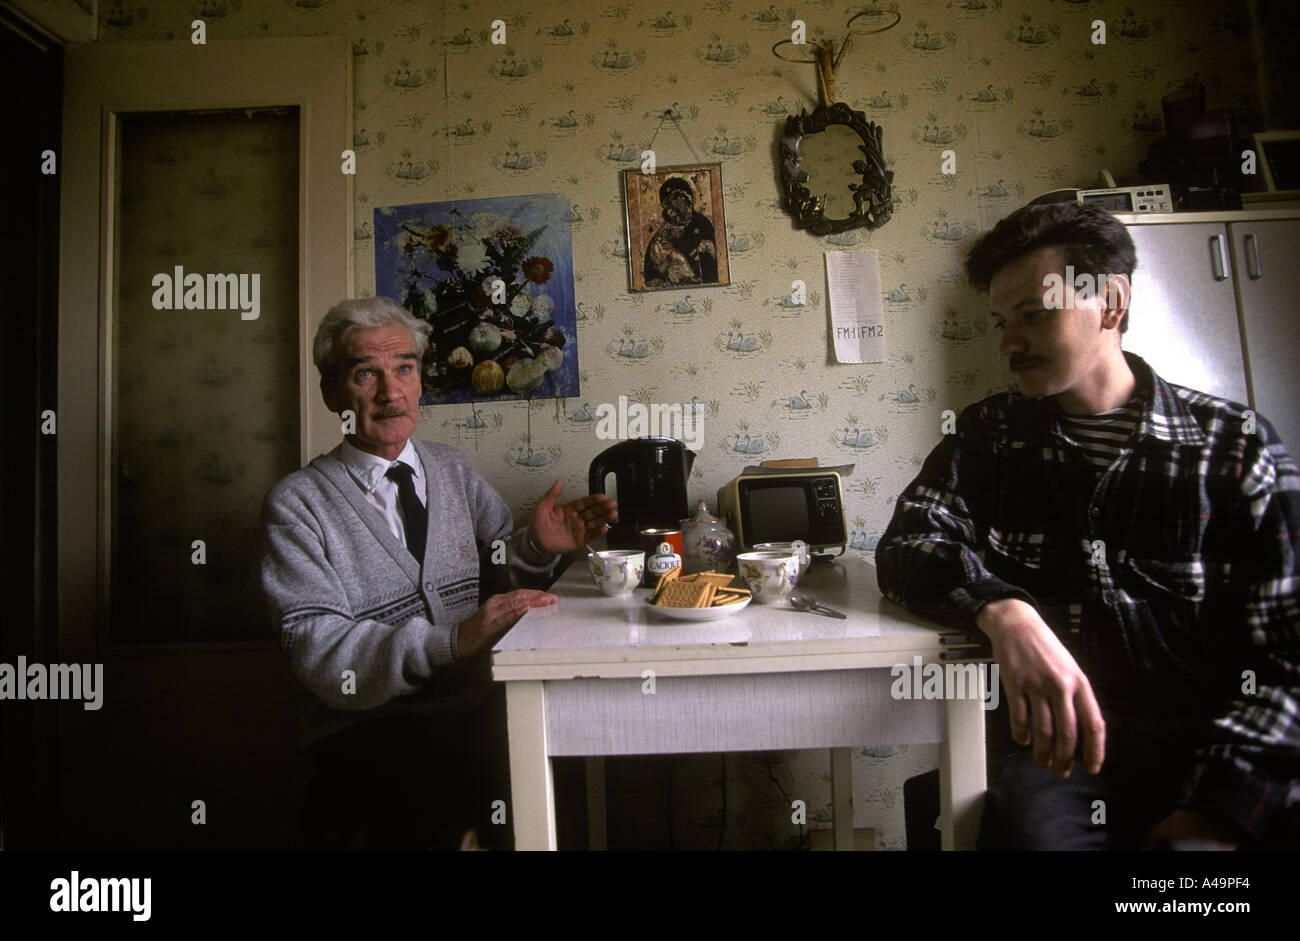 man who saved the earth stanislav petrov former soviet military prevented potential nuclear launch with son dmitri - Stock Image